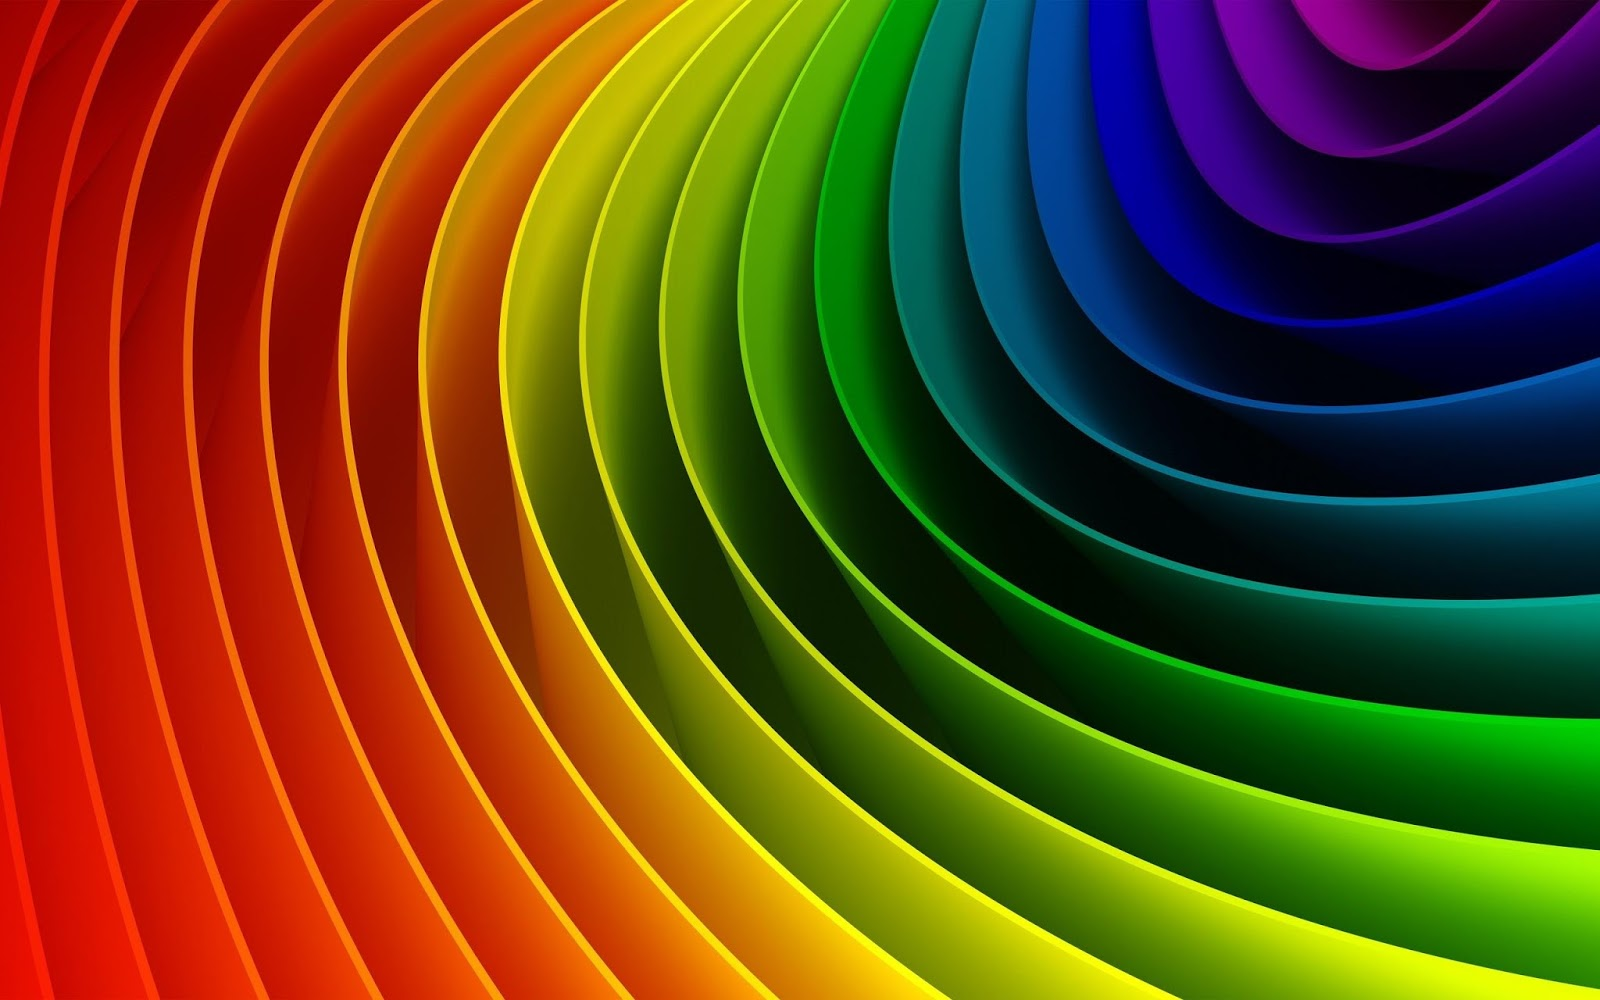 Amazing Colorful Wallpapers   Wallpaper Albums